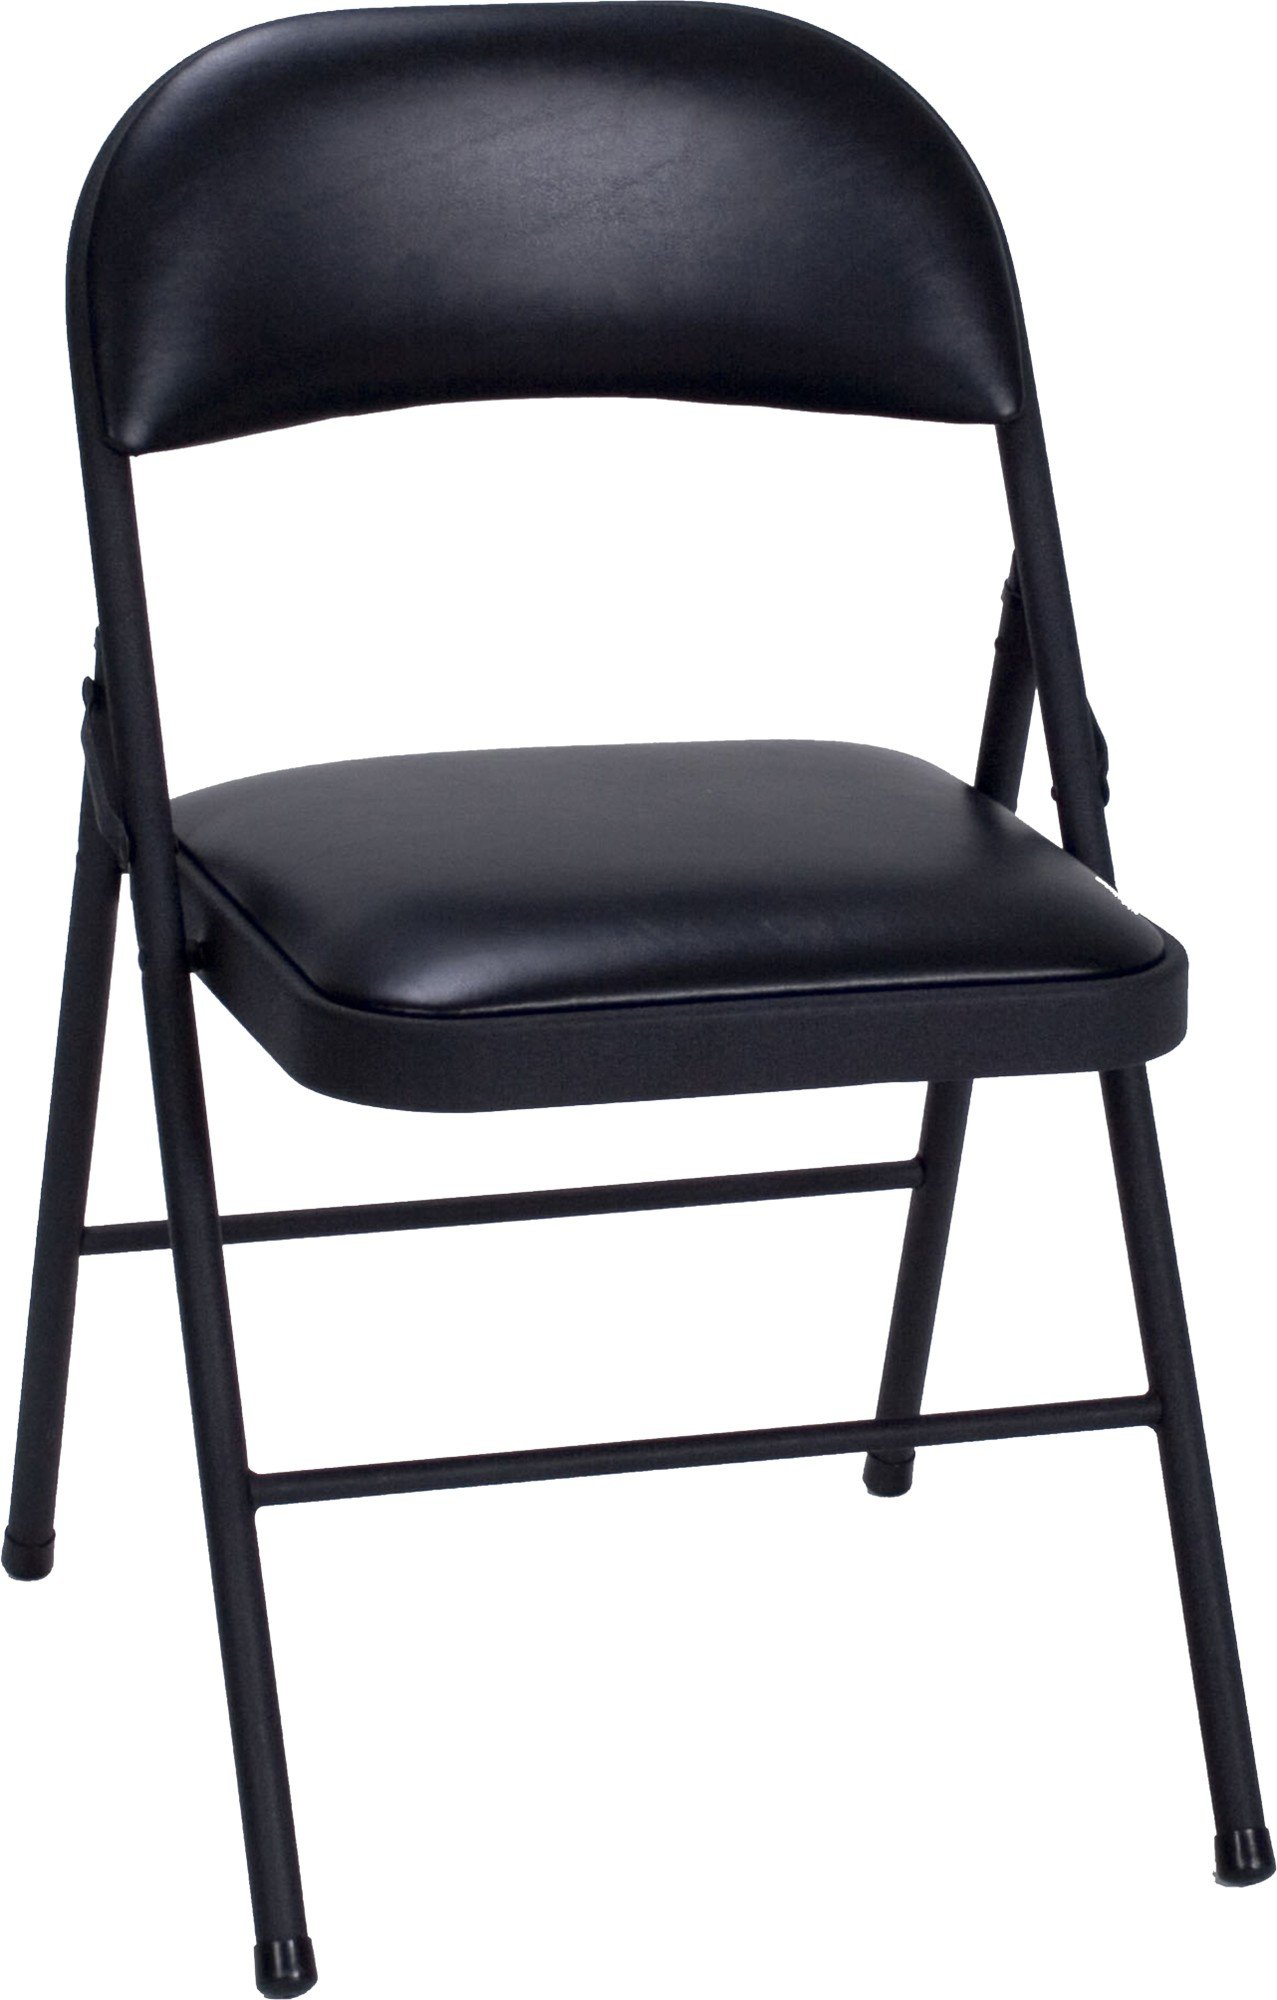 folding chair parts manufacturer lyrics cosco vinyl 4 pack black ebay